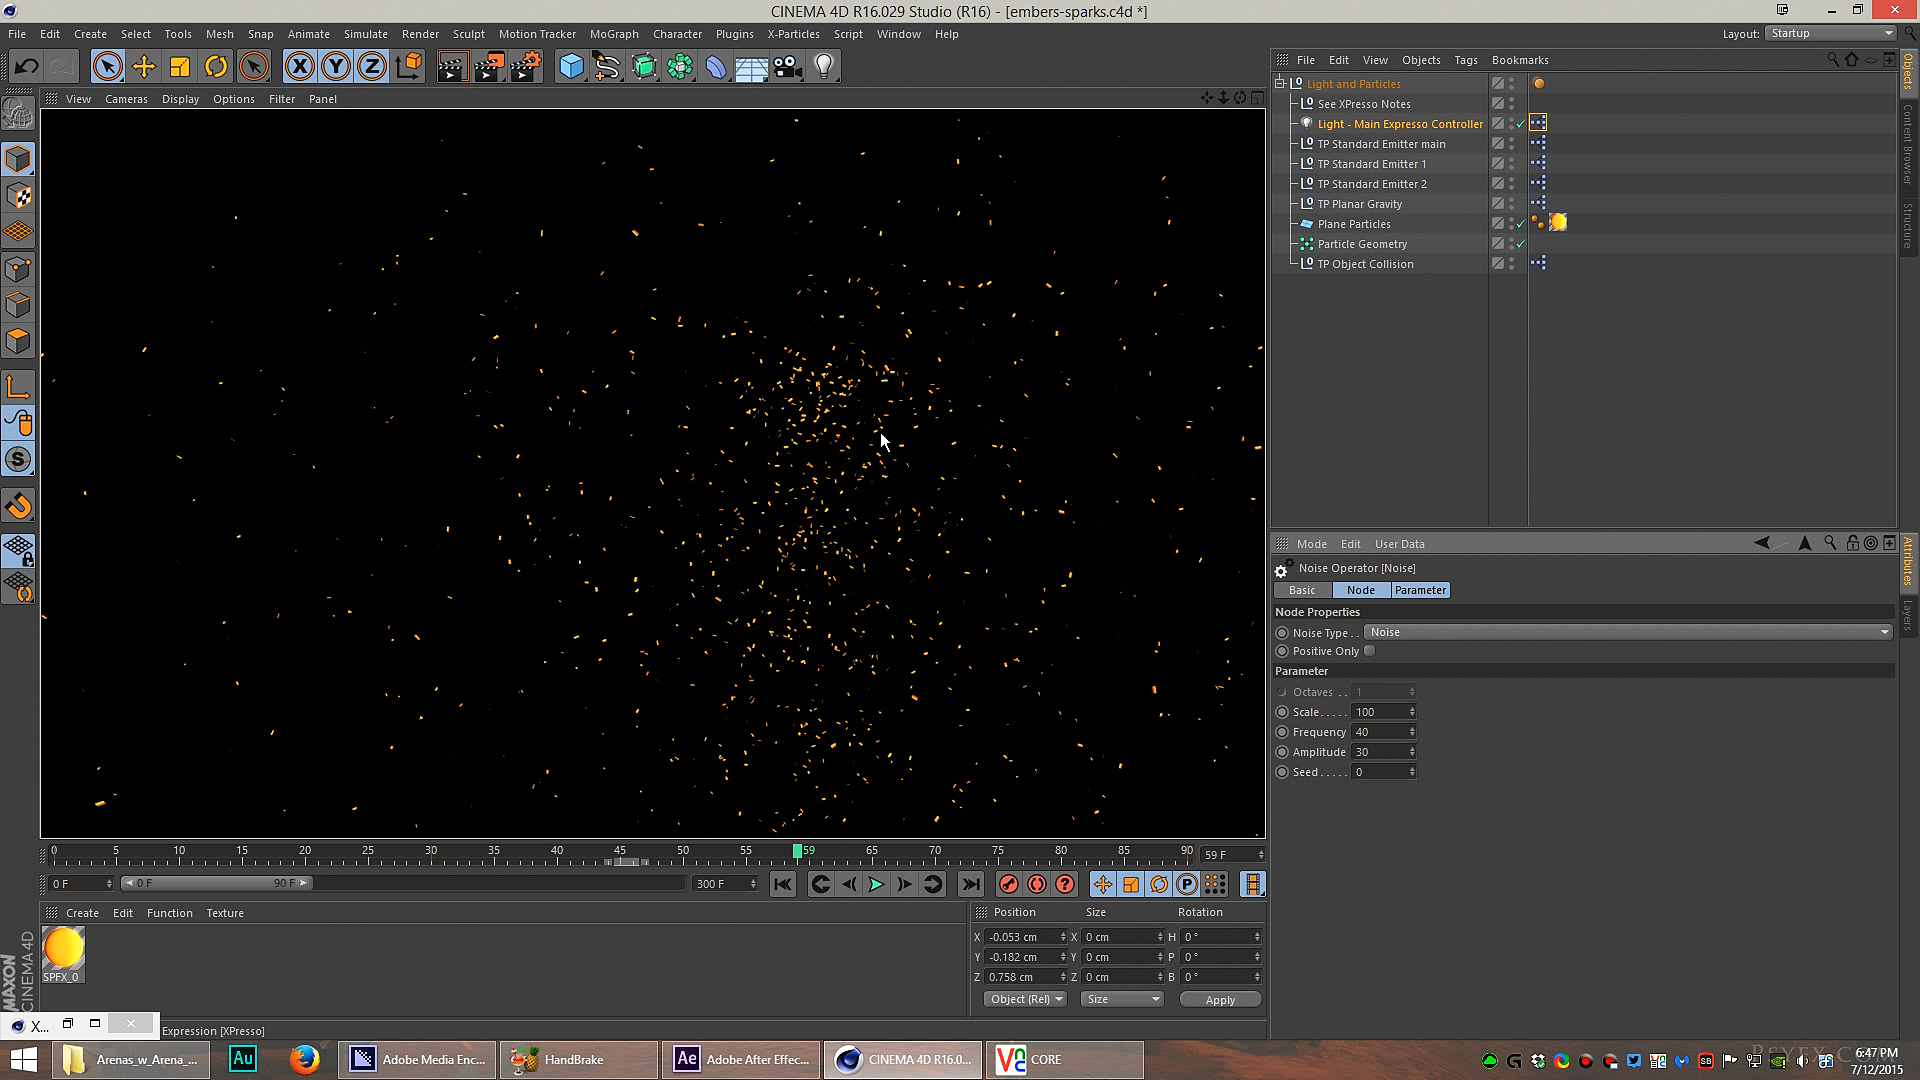 Fire Embers, Snow, and Particles in AE and C4D  [DOWNLOAD]